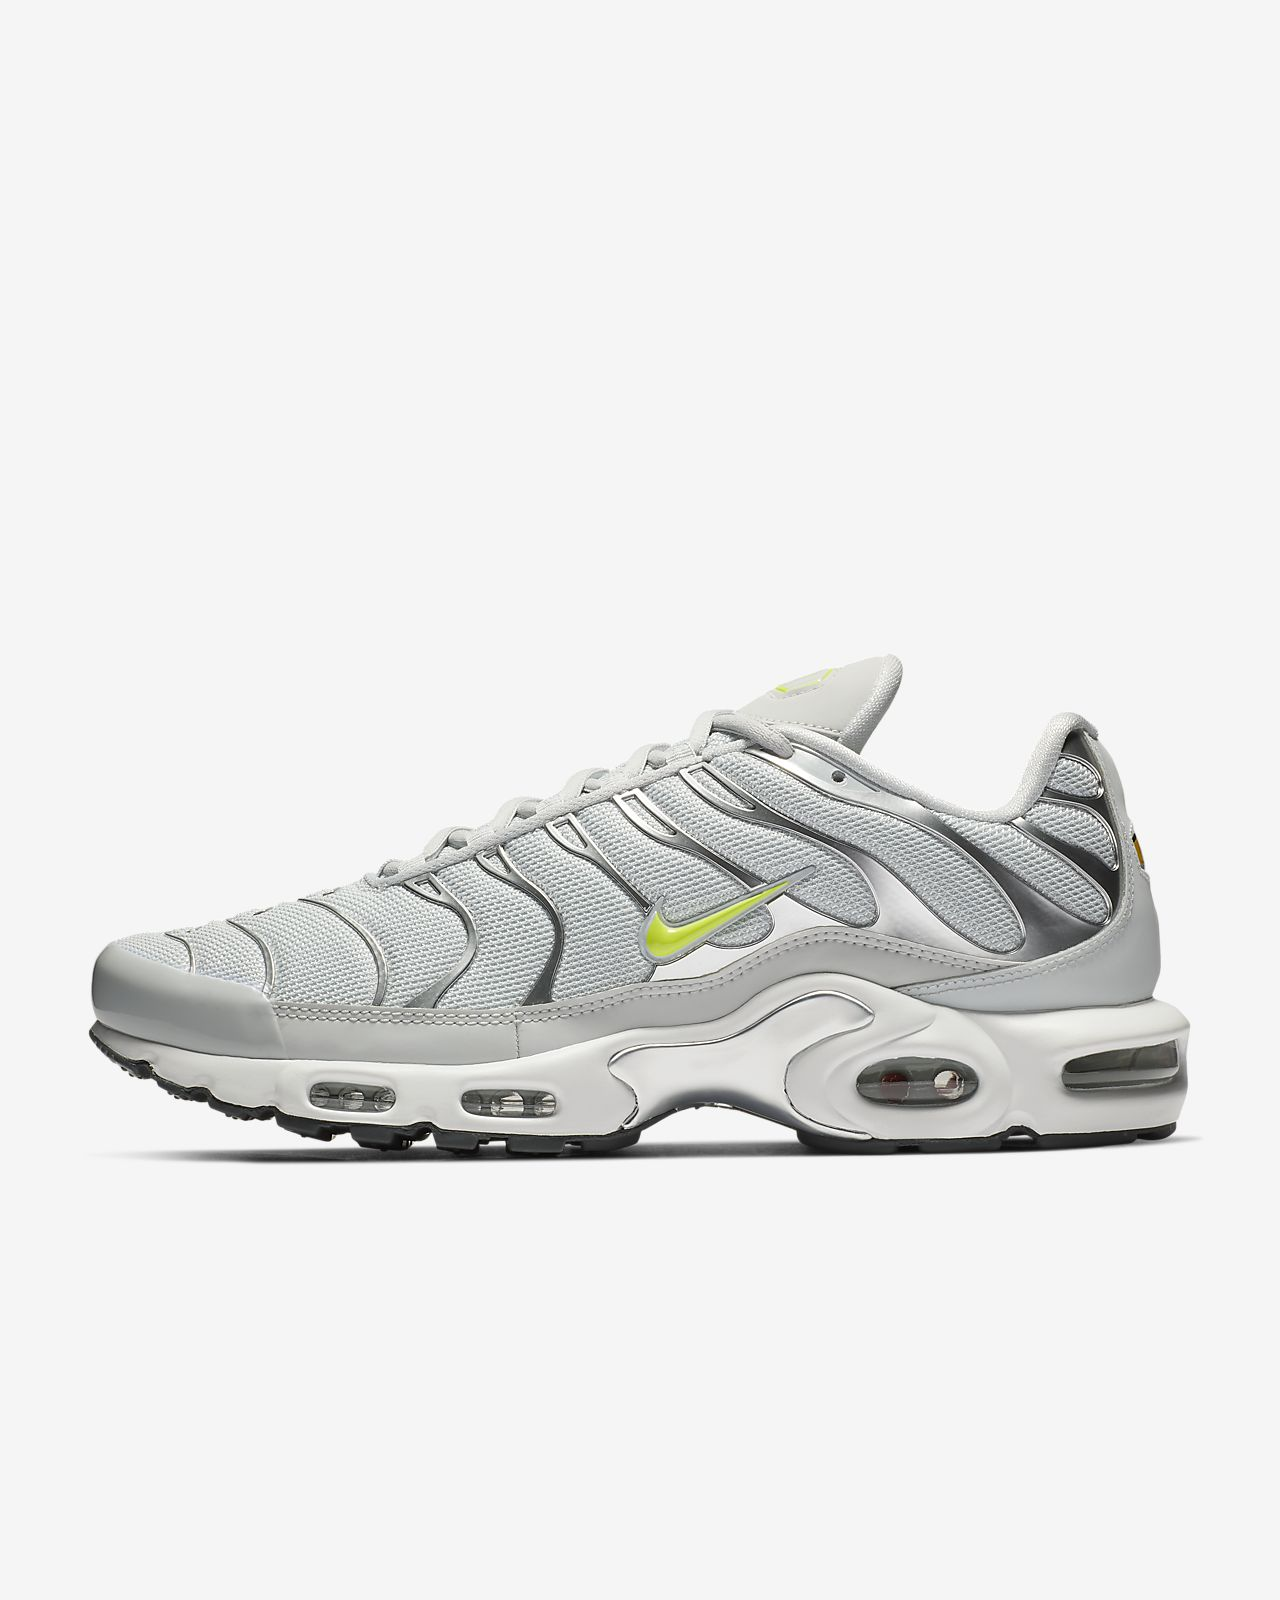 6a1b738c777 Nike Air Max Plus TN SE Men s Shoe. Nike.com AT